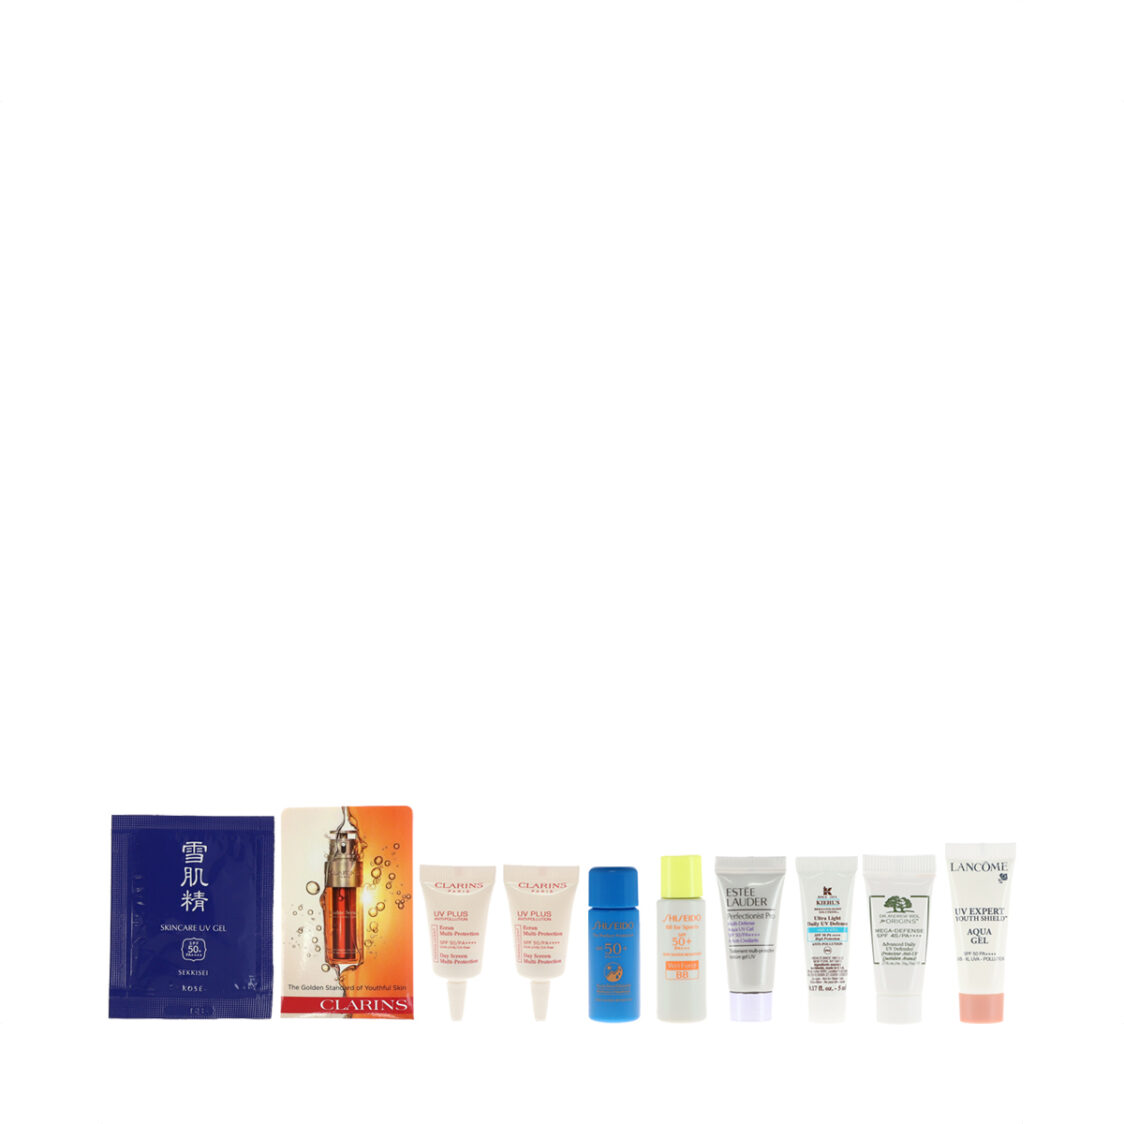 All About Suncare Beauty Set worth 127